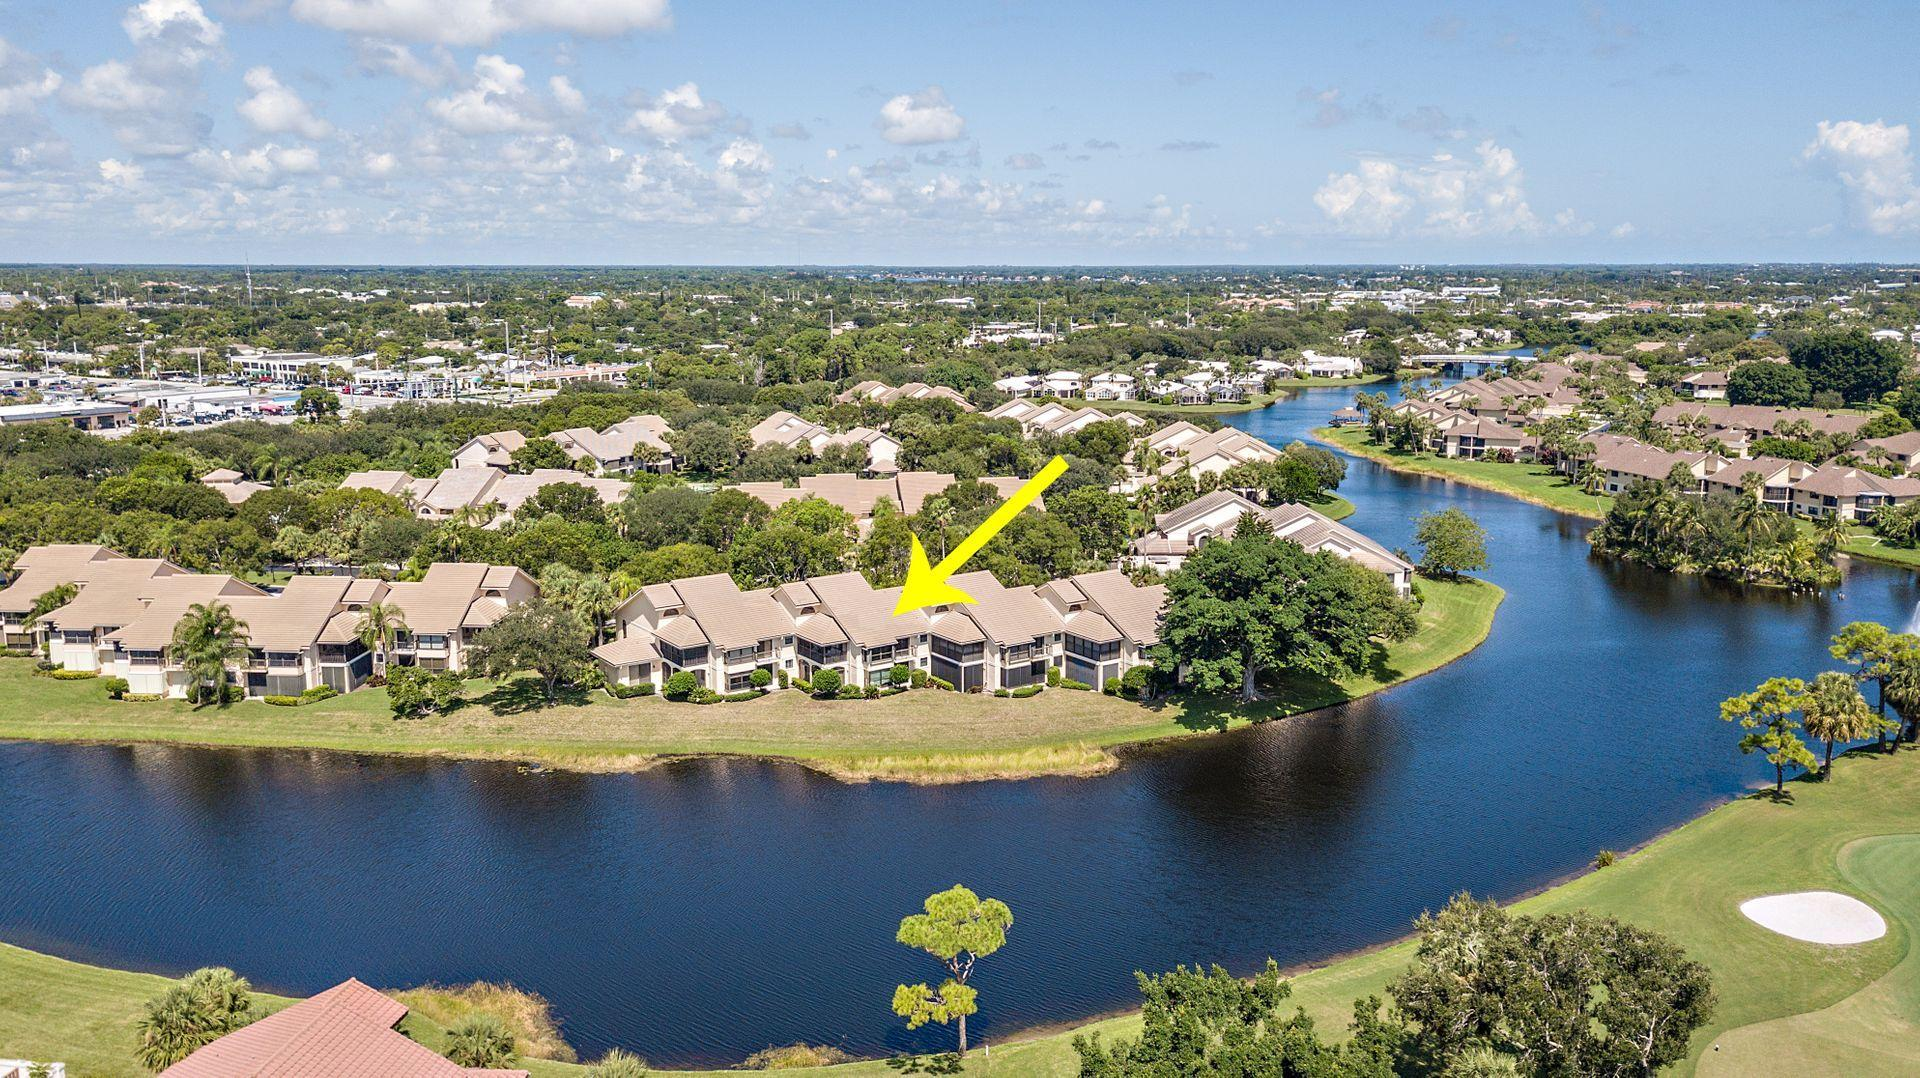 3910 Back Bay Drive 235, Jupiter, Florida 33477, 3 Bedrooms Bedrooms, ,2 BathroomsBathrooms,A,Condominium,Back Bay,RX-10567968